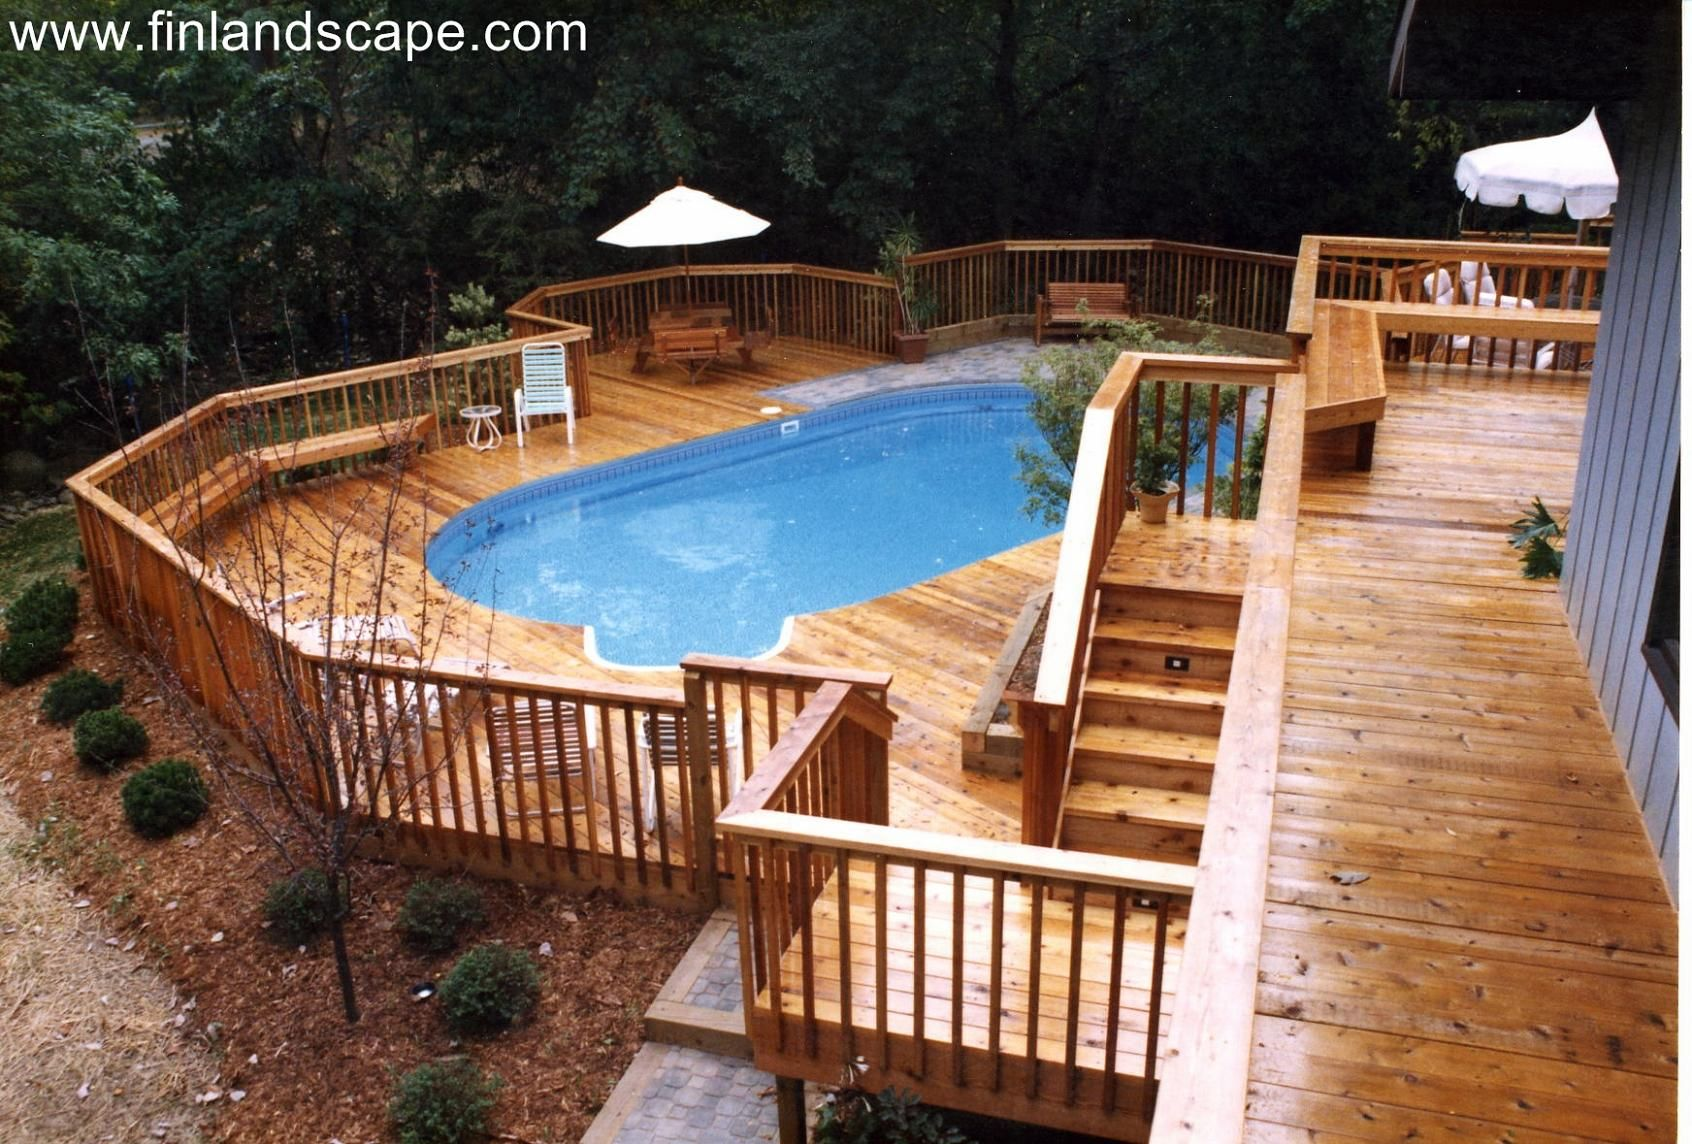 Multi Level Backyard With Pool : Pin by Florence Thomas on Pools and decks  Pinterest